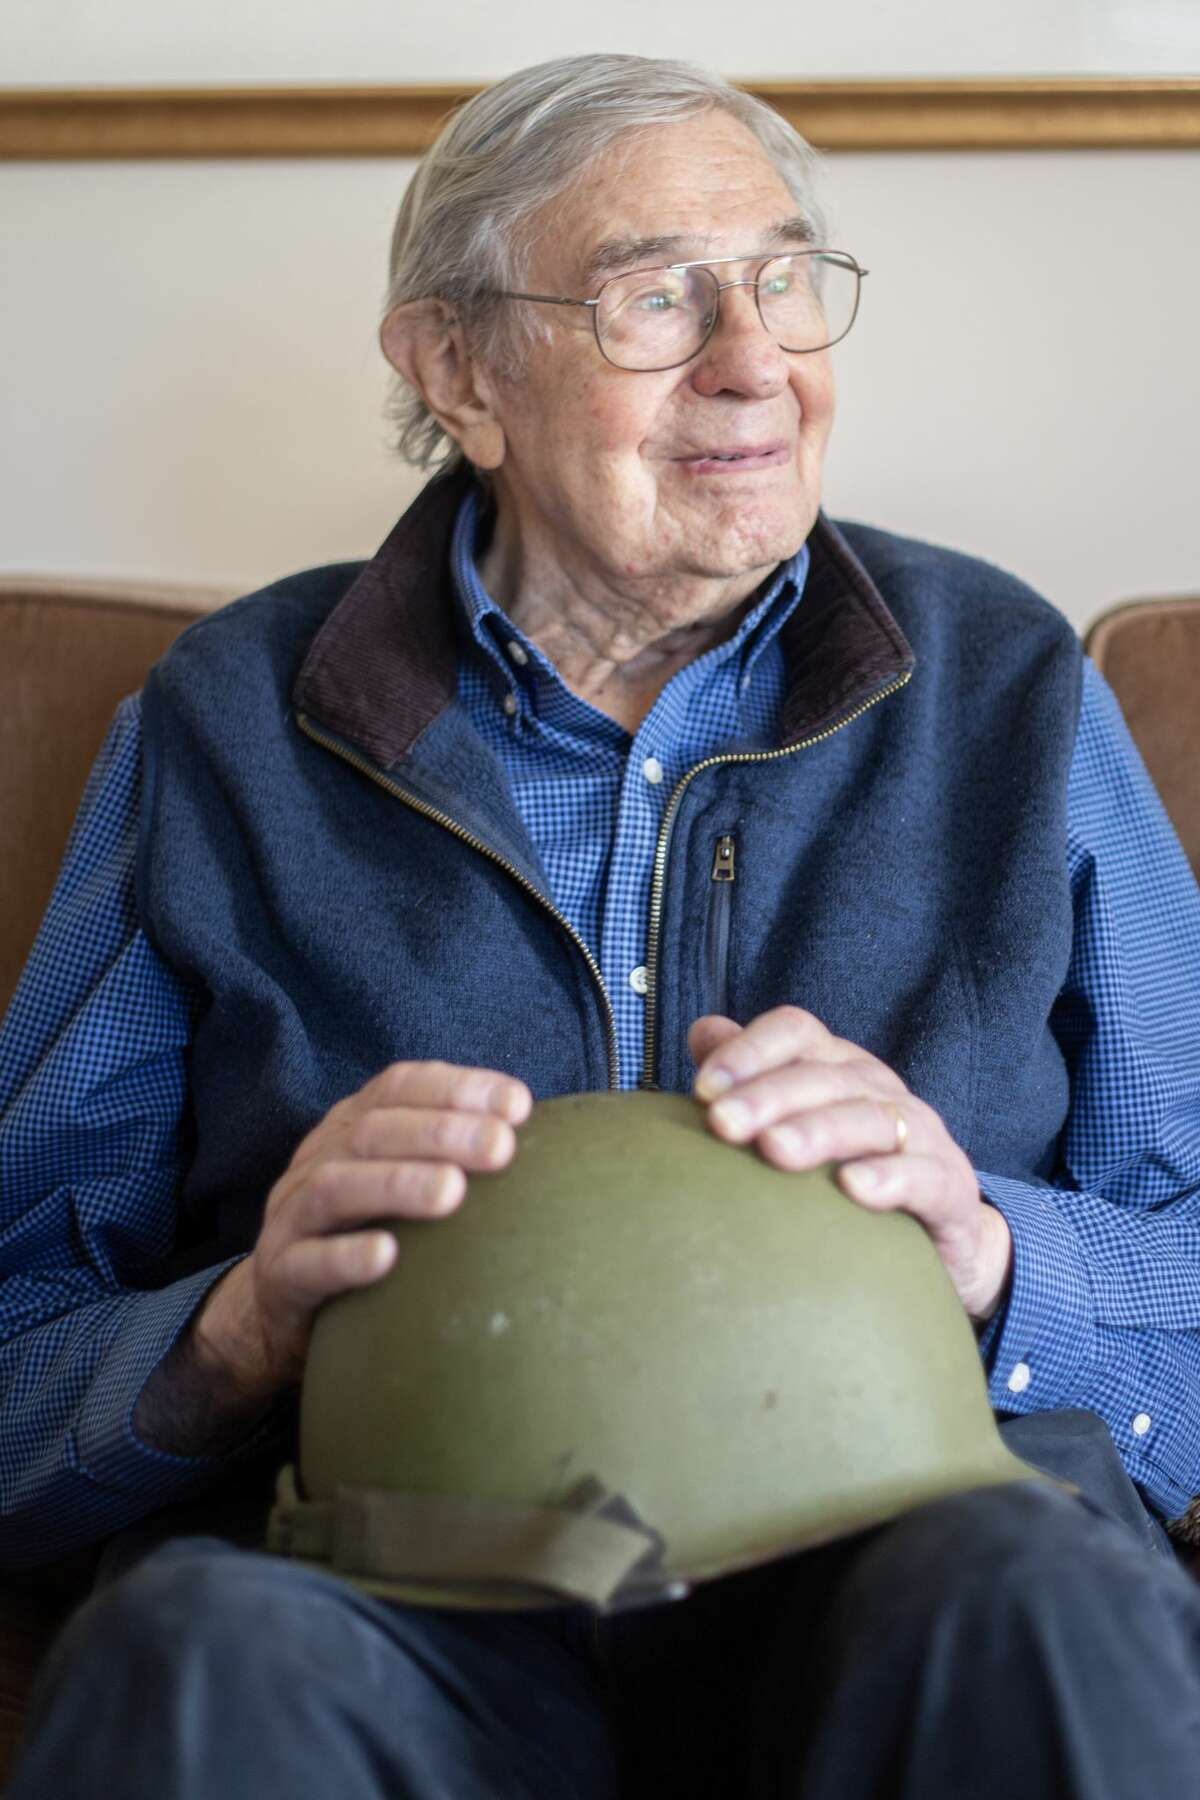 Bill Swetow is a 102-year-old World War II veteran from Ulster County who appears in a PSA urging vaccinations against COVID-19.